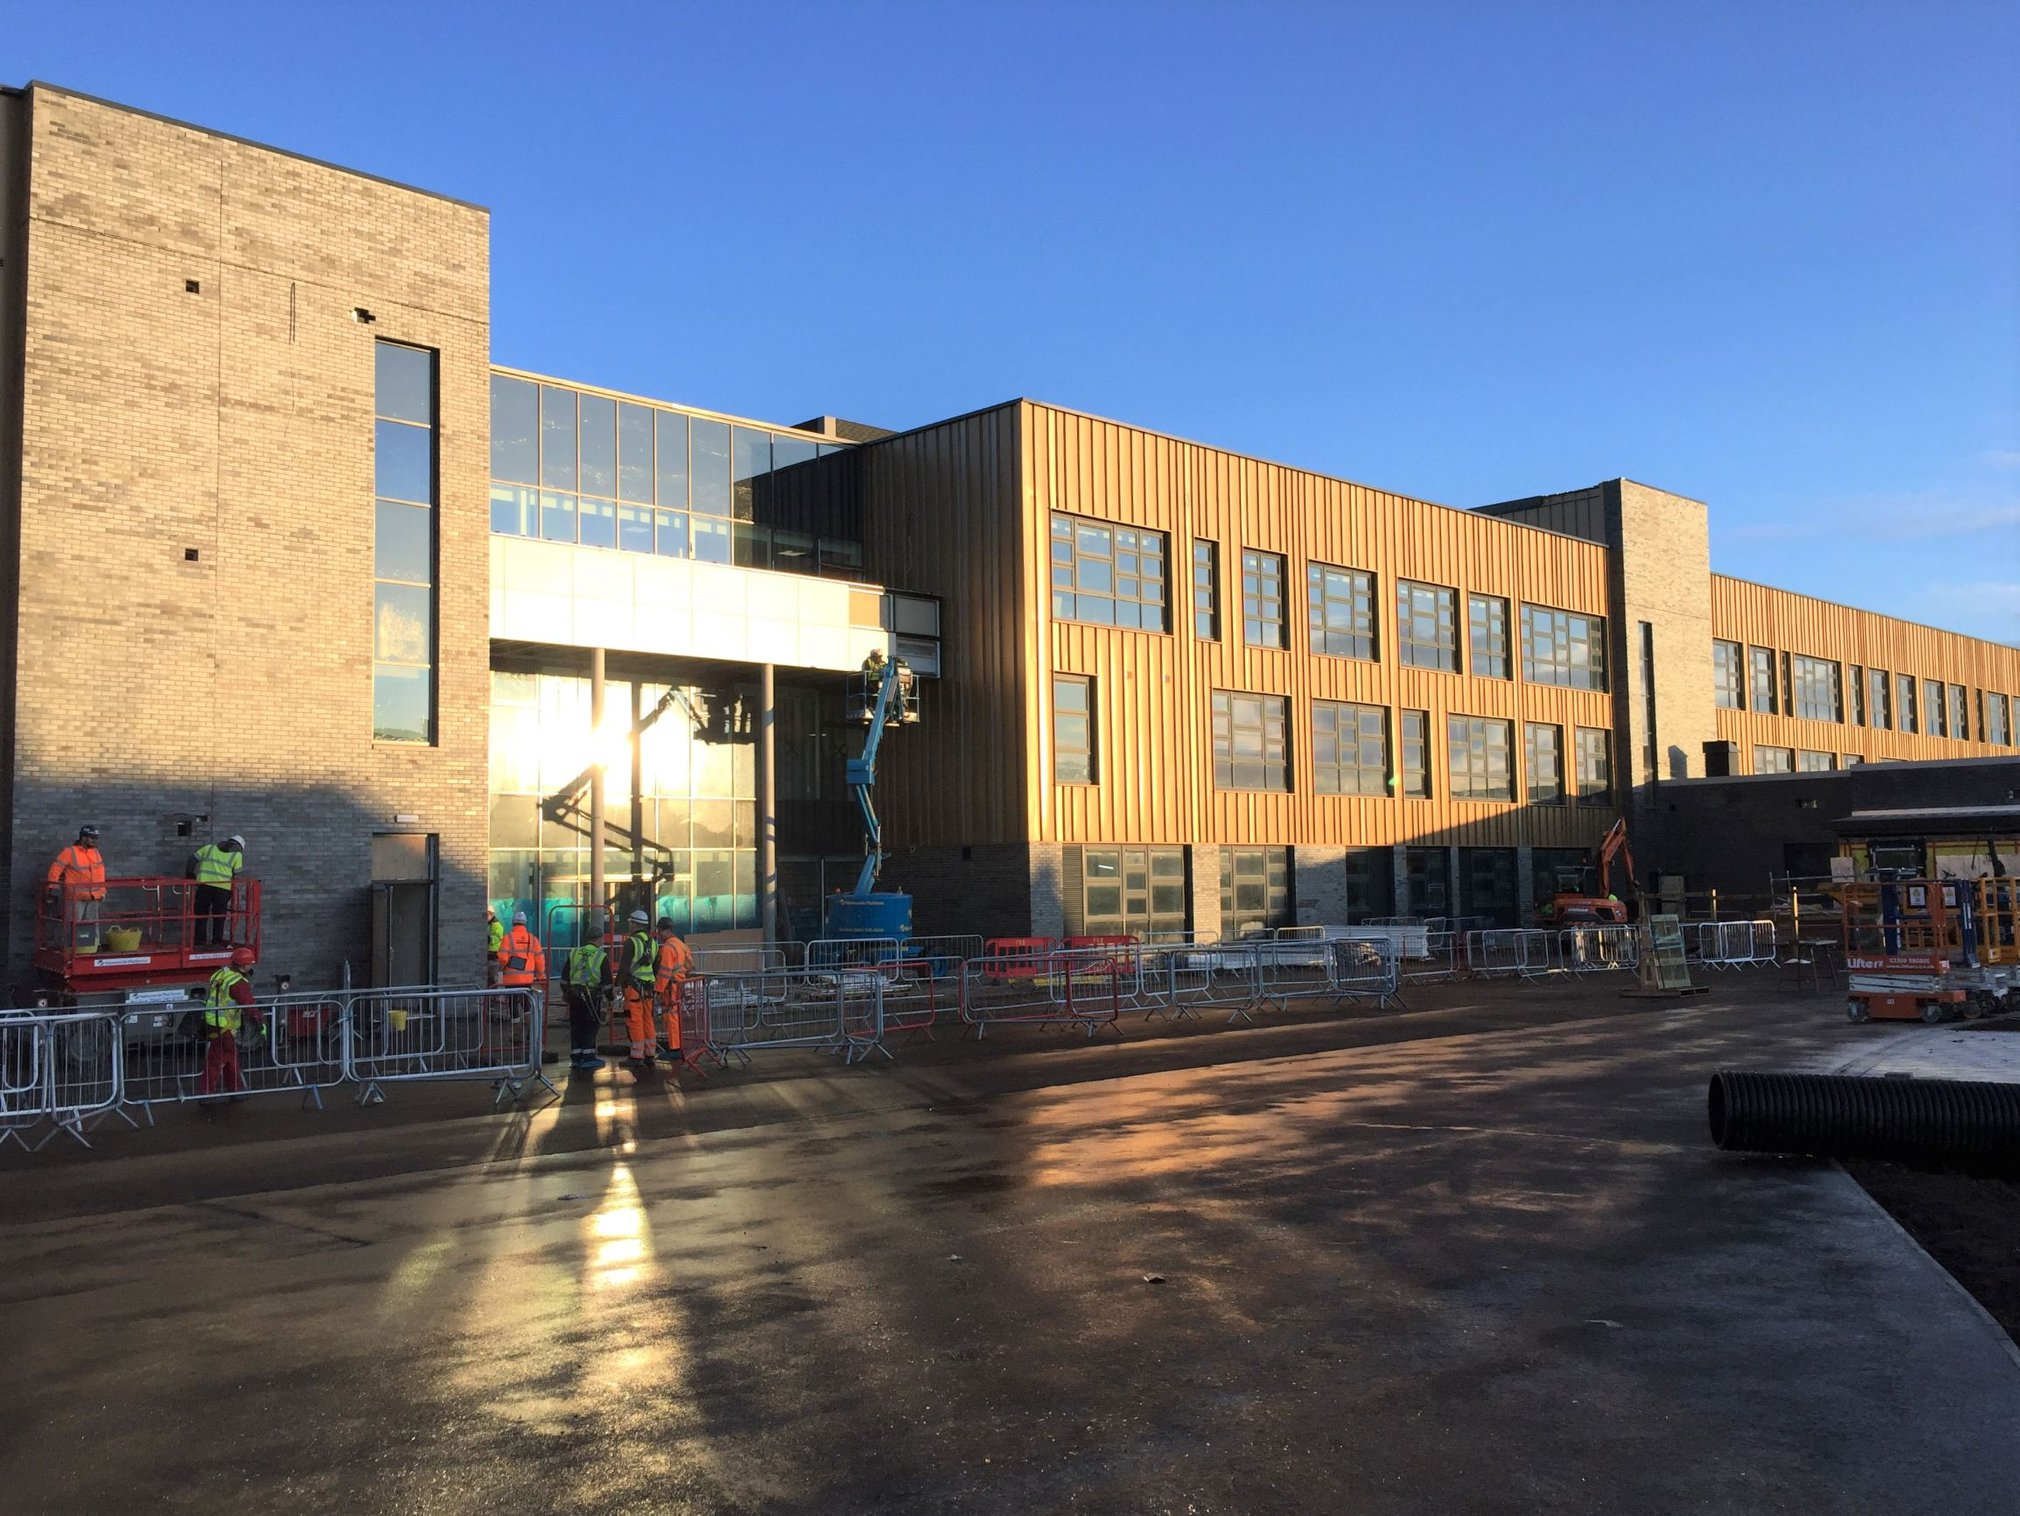 Work on the £55m Inverurie Community Campus project is ongoing.